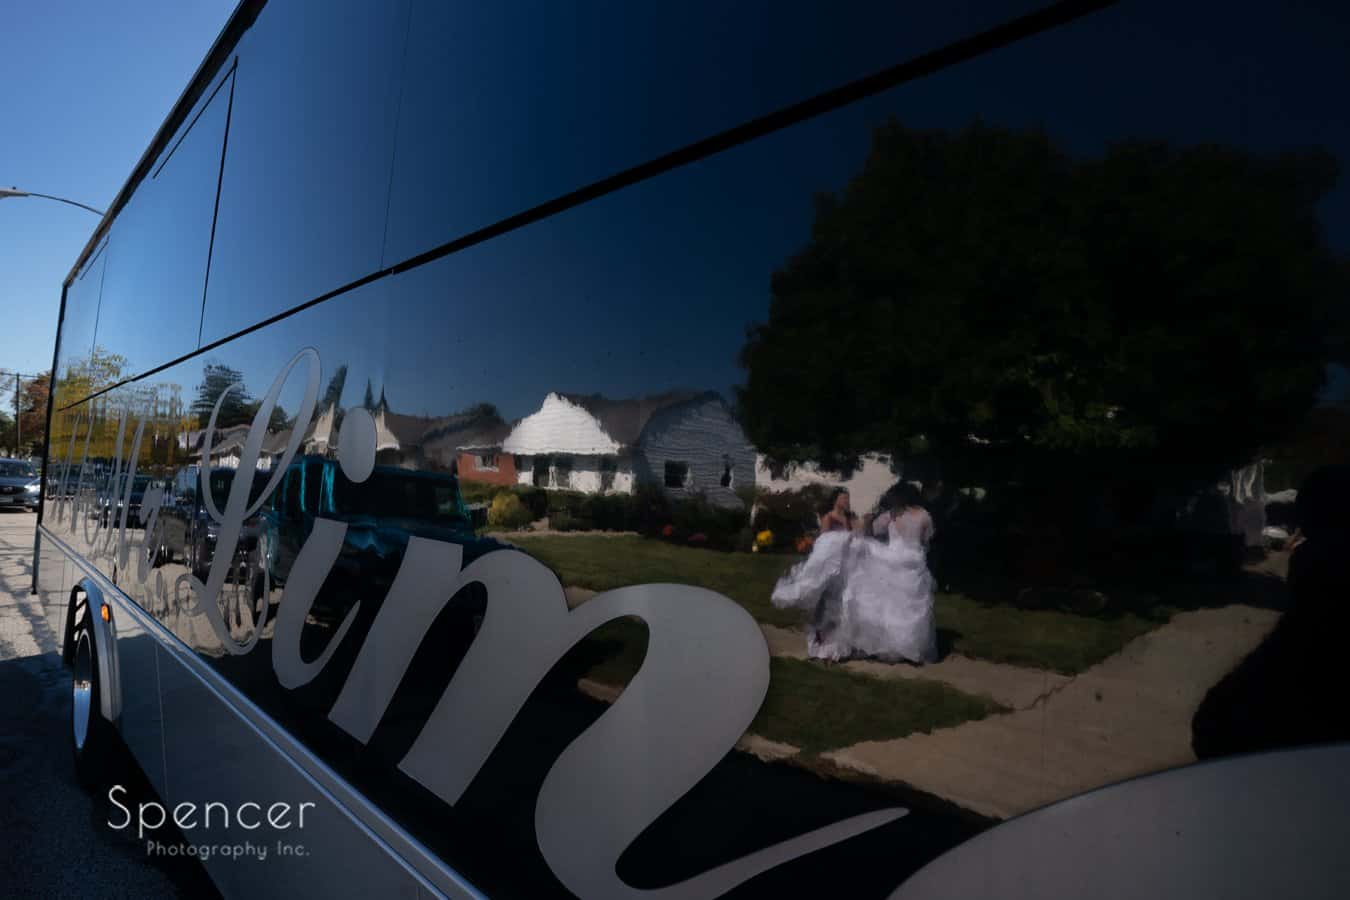 reflection of bride in limo bus